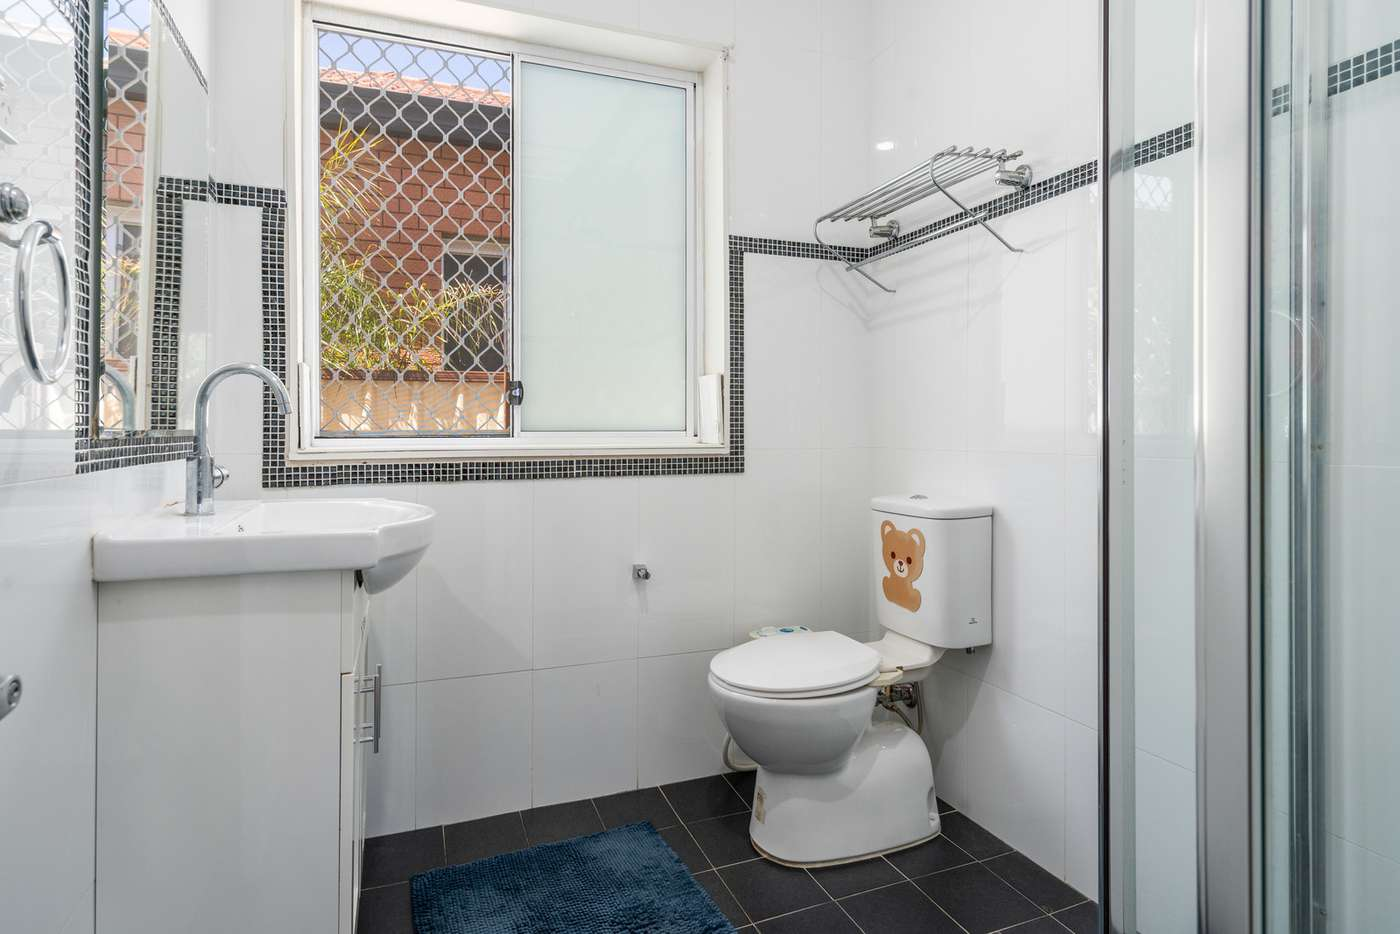 Fifth view of Homely house listing, 35 Langtry Avenue, Auburn NSW 2144